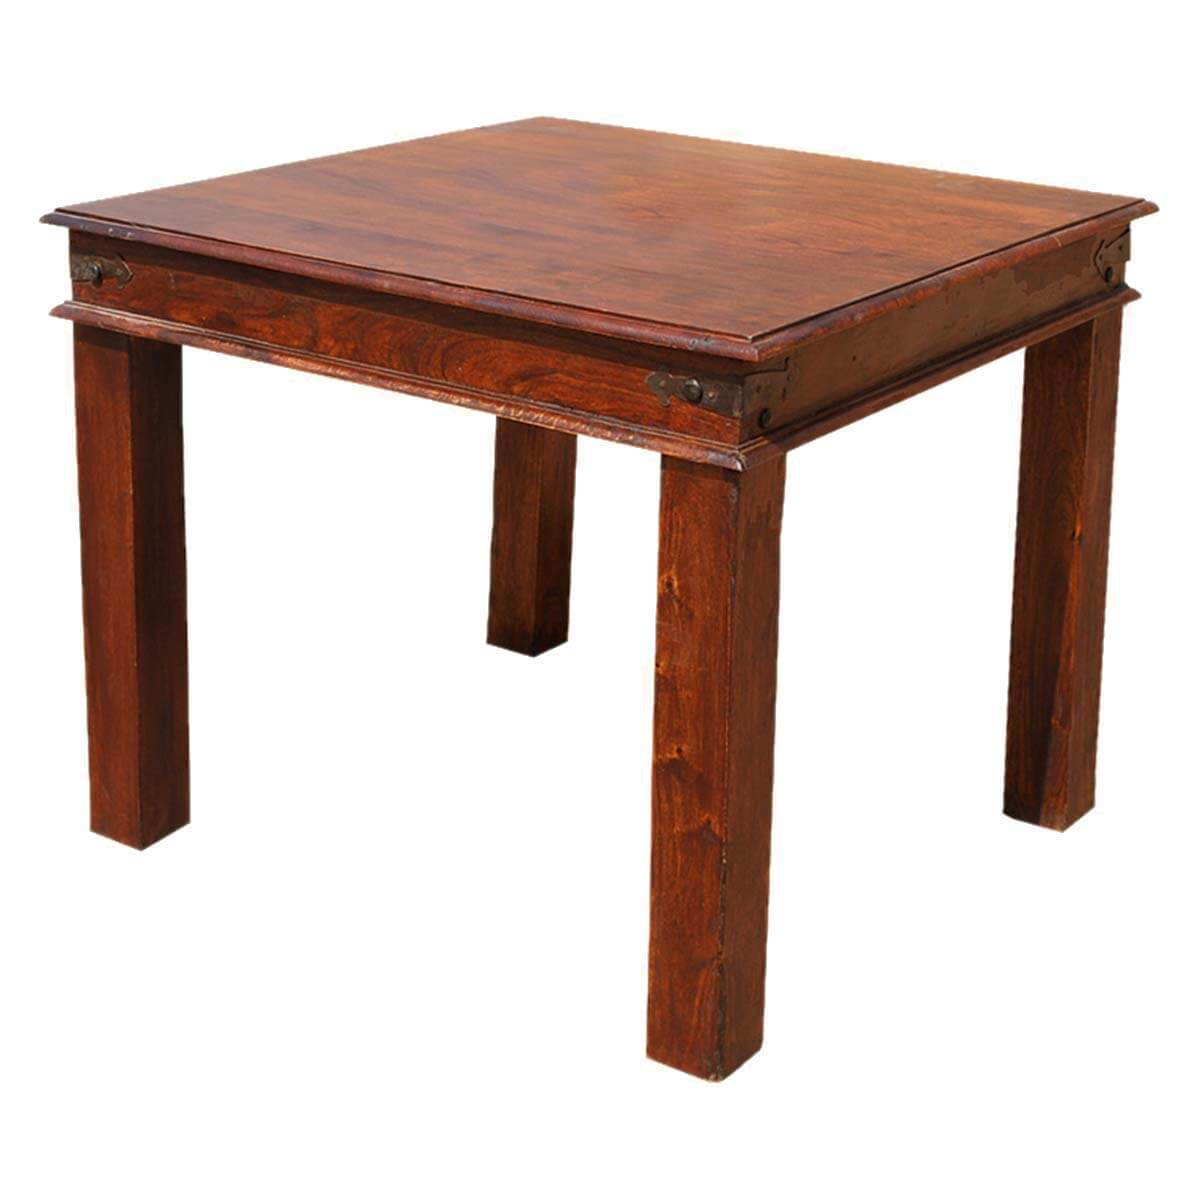 grogan rustic solid wood square dining table on solid wood dining table id=54097